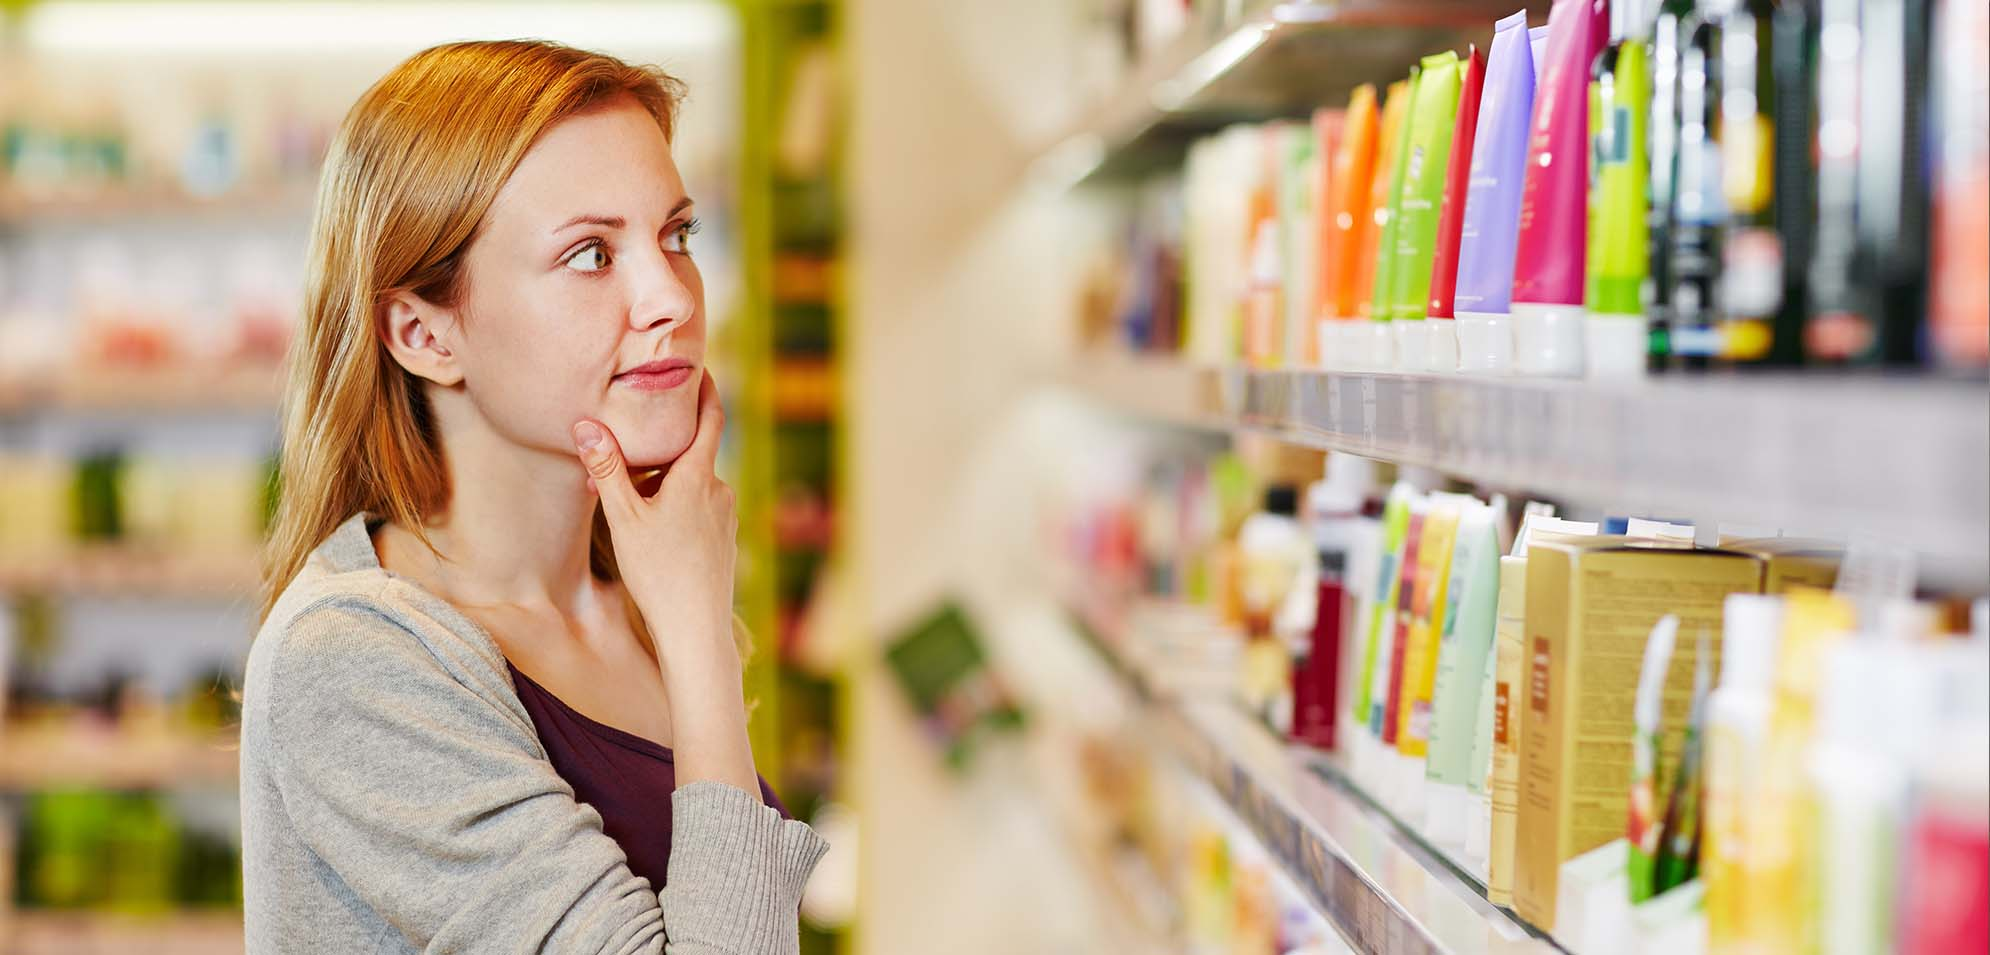 How to choose skin care product